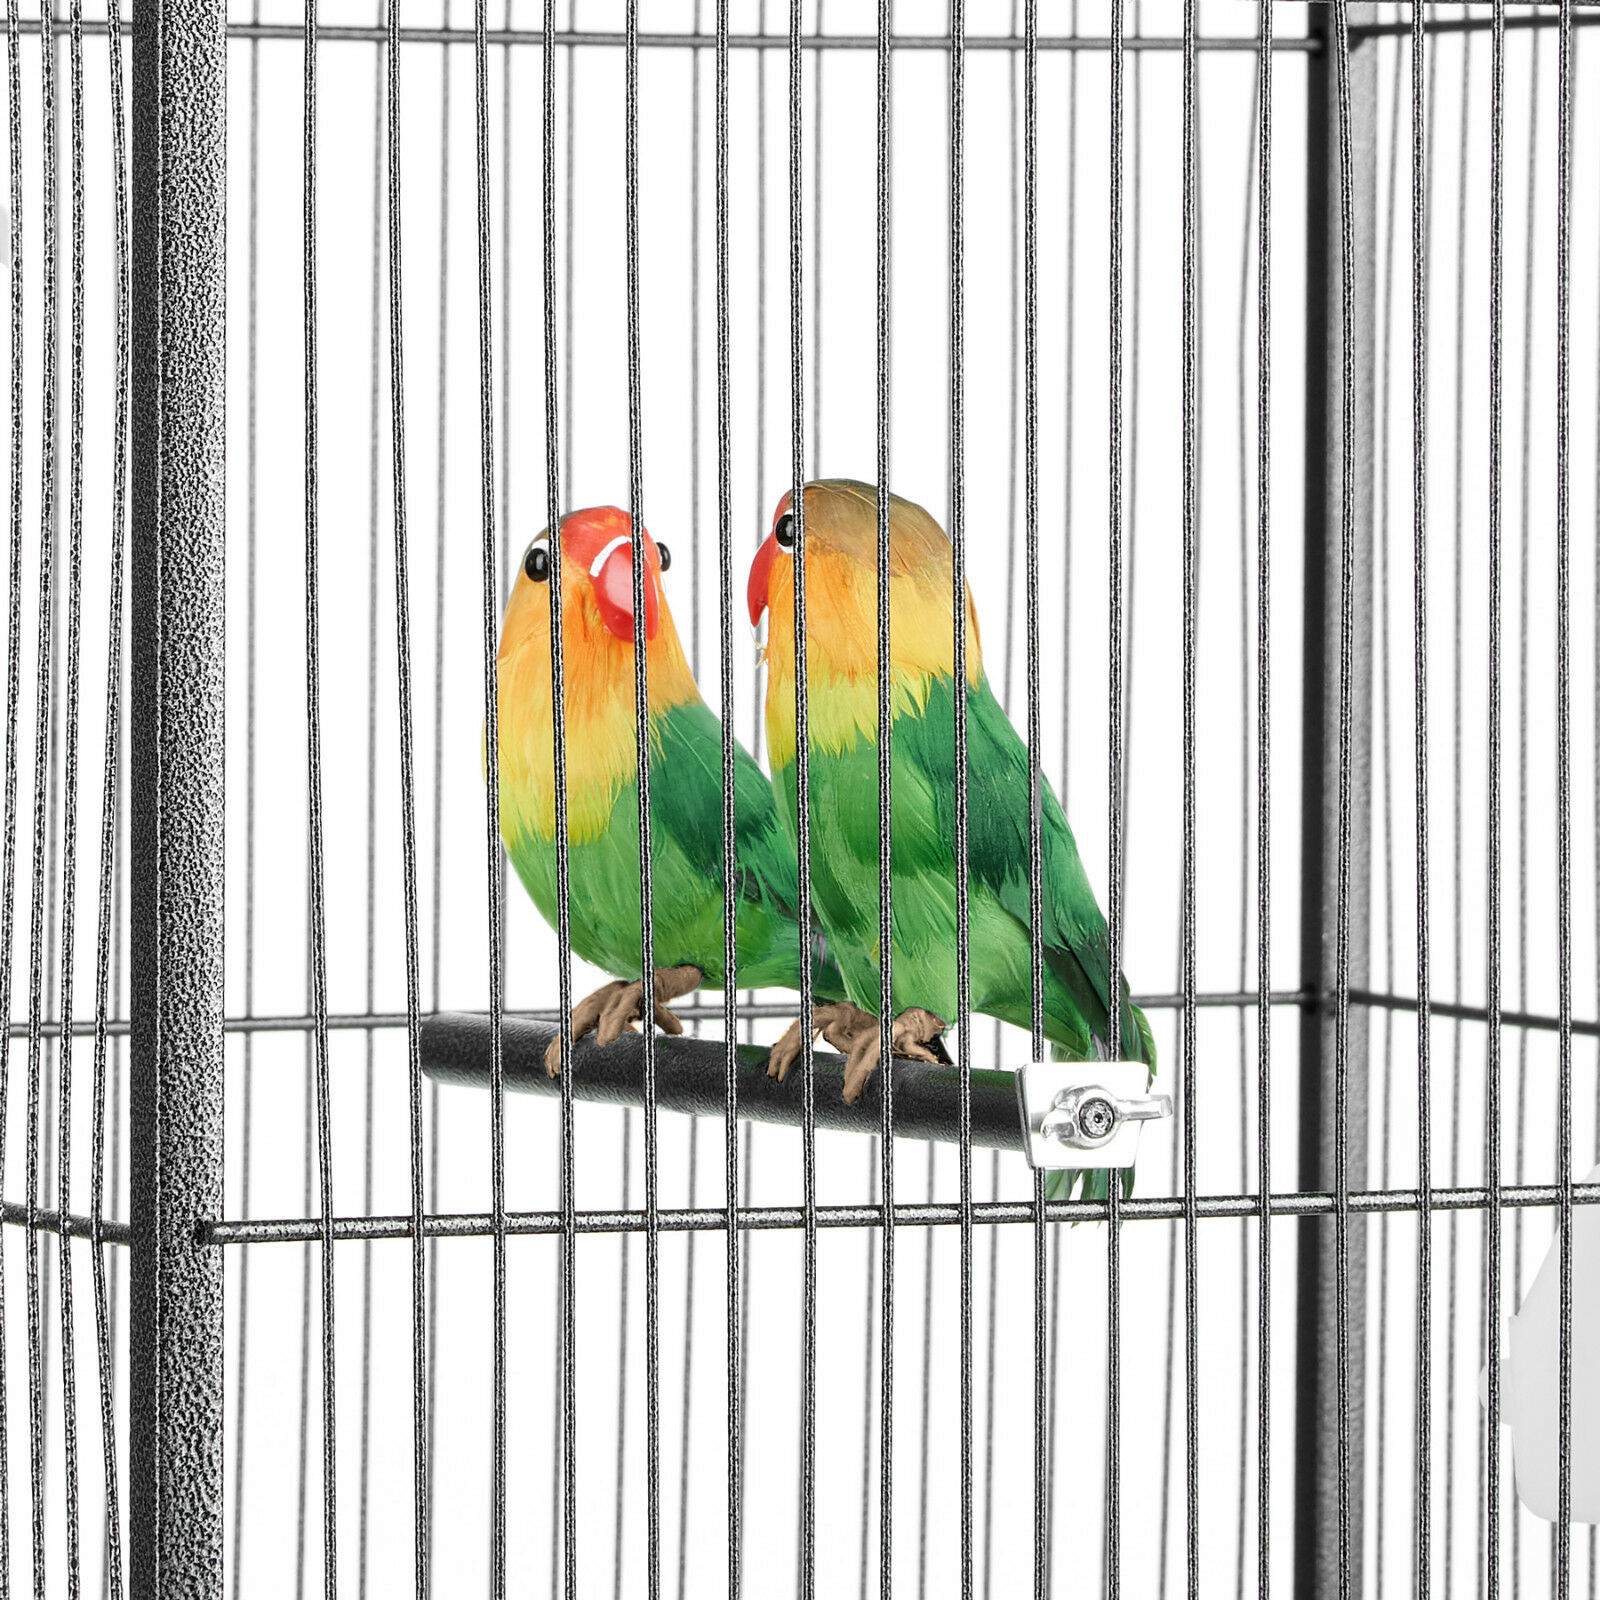 Pet Supplies Small Bird Cage White Steady Pet Ting Daffodil Bird Cage For Finch Canary Budgie